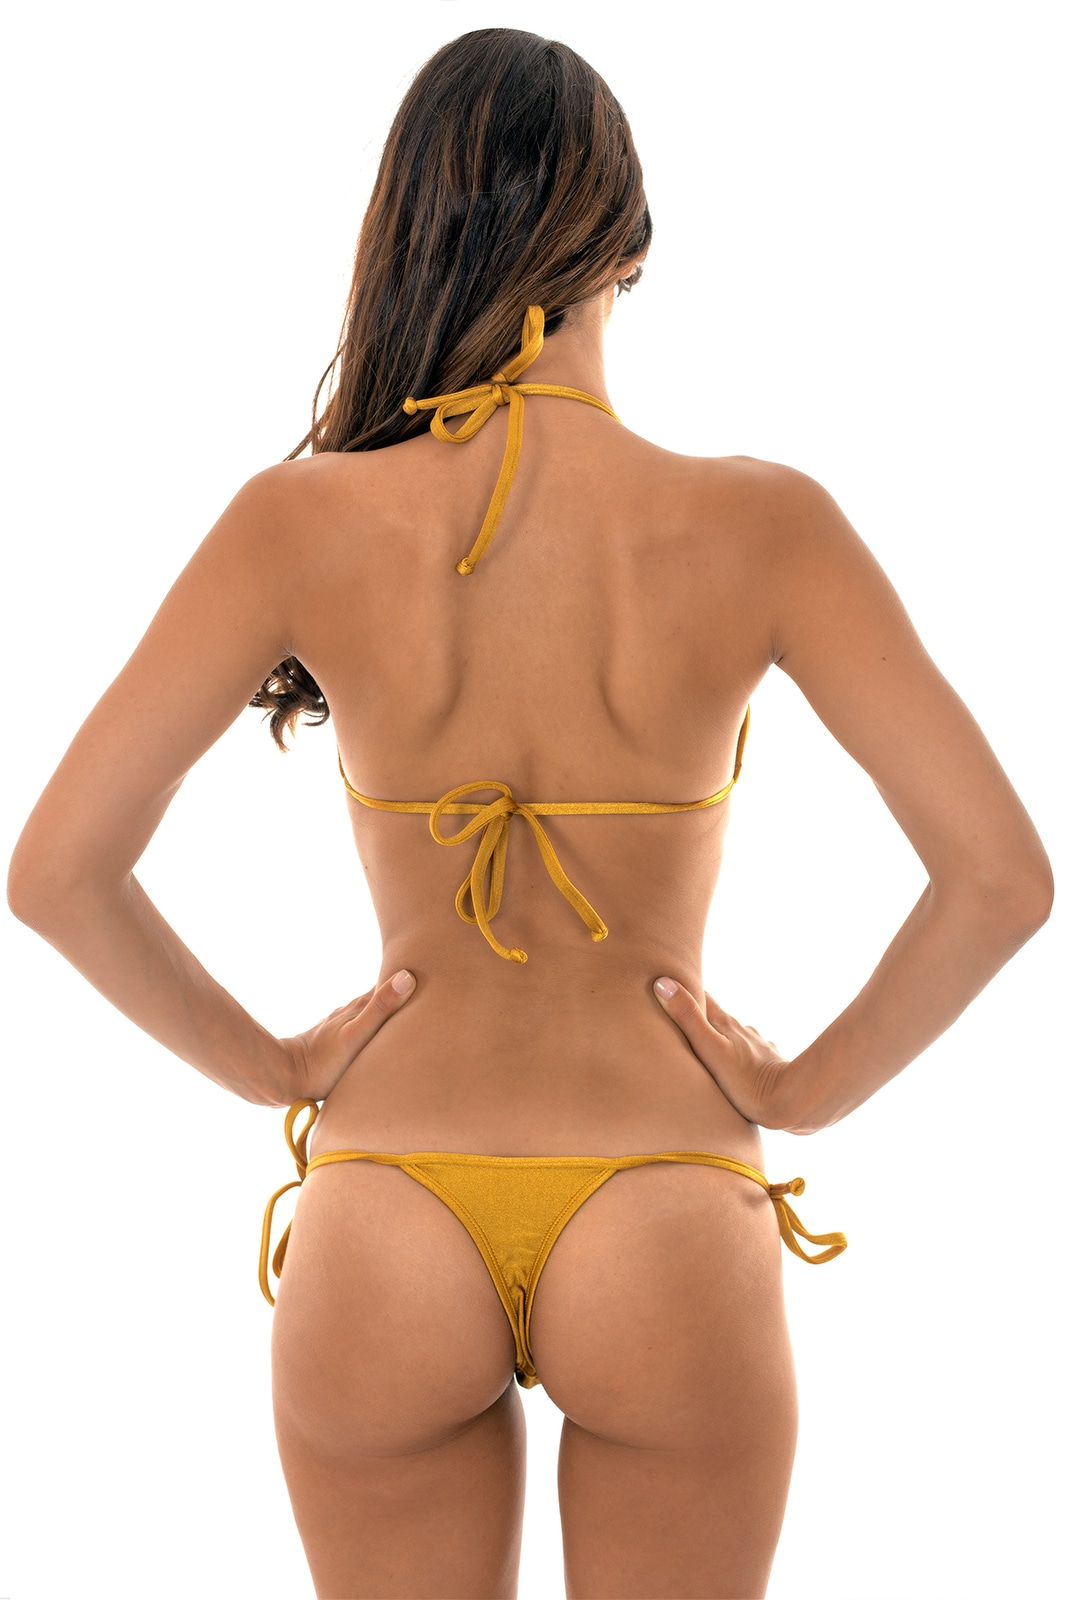 e727a0ec31 Gold Bikini With Tie-side Thong Bottoms - Gold Tri Micro - Rio de Sol